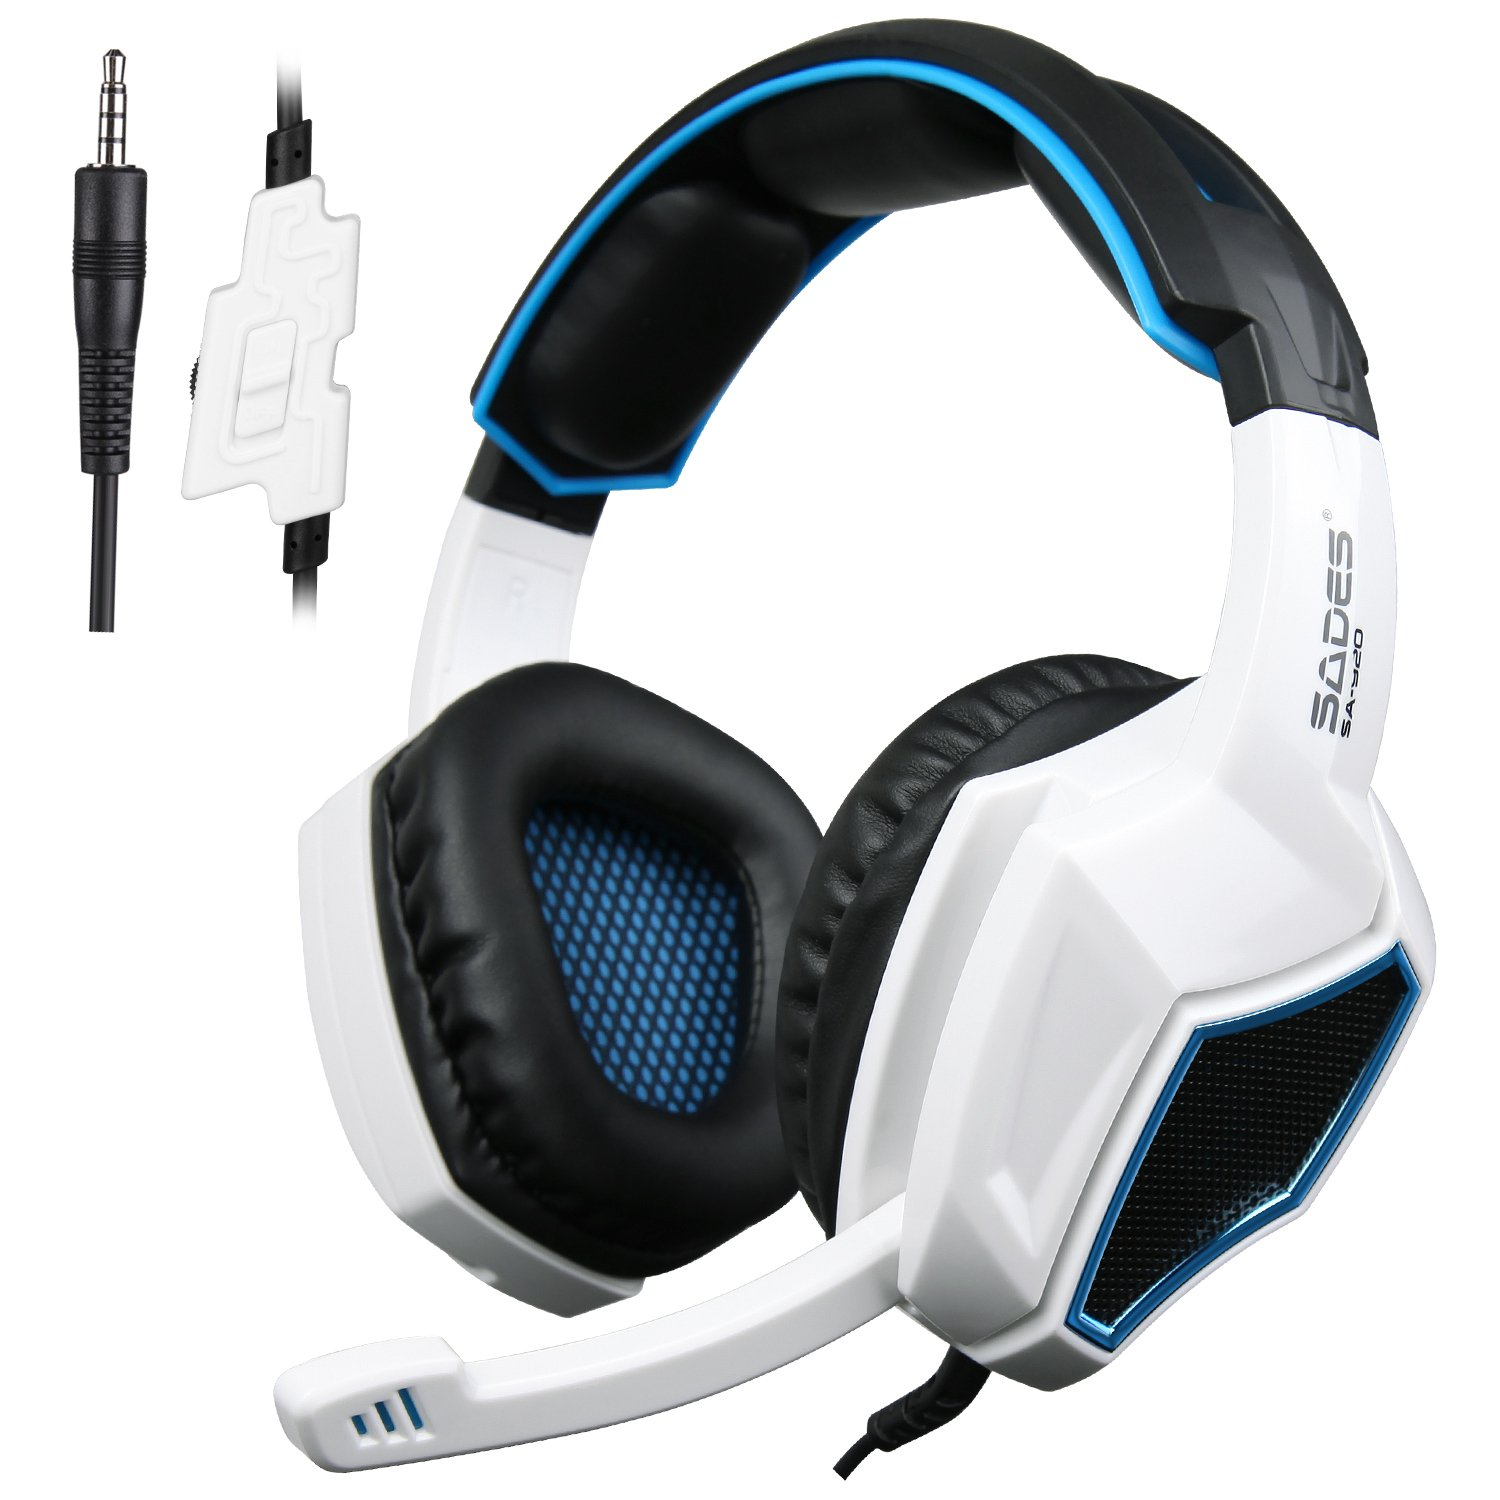 Latest Version Ps4 Headphones,Sades SA920 3.5mm Stereo Bass Gaming Headset with Microphone for New Xbox one PS4 PC Laptop Mac Xbox 360(Black White) by Sades